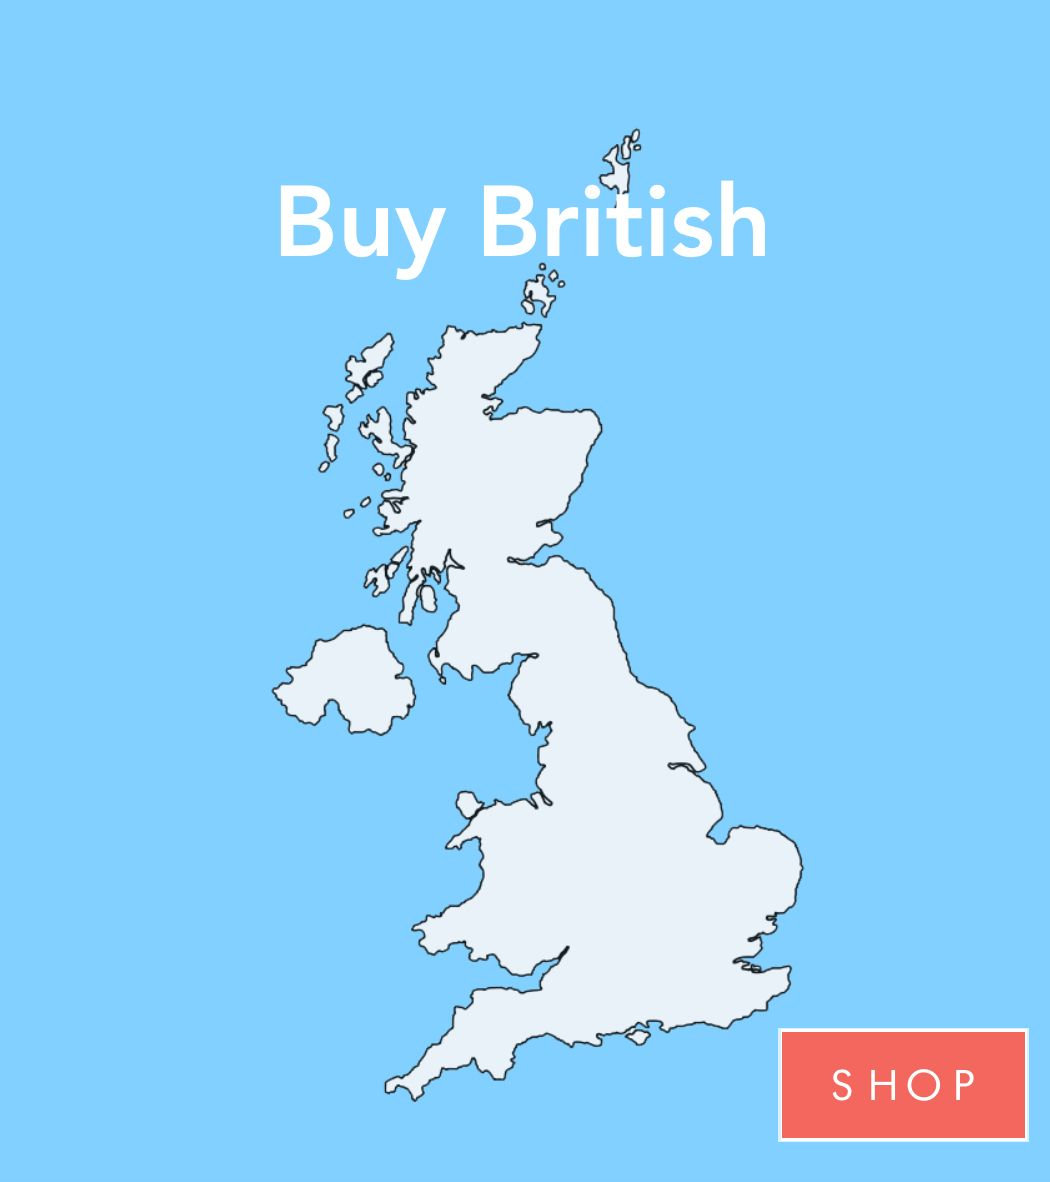 Buy British - Shop everything made, designed or produced in the UK